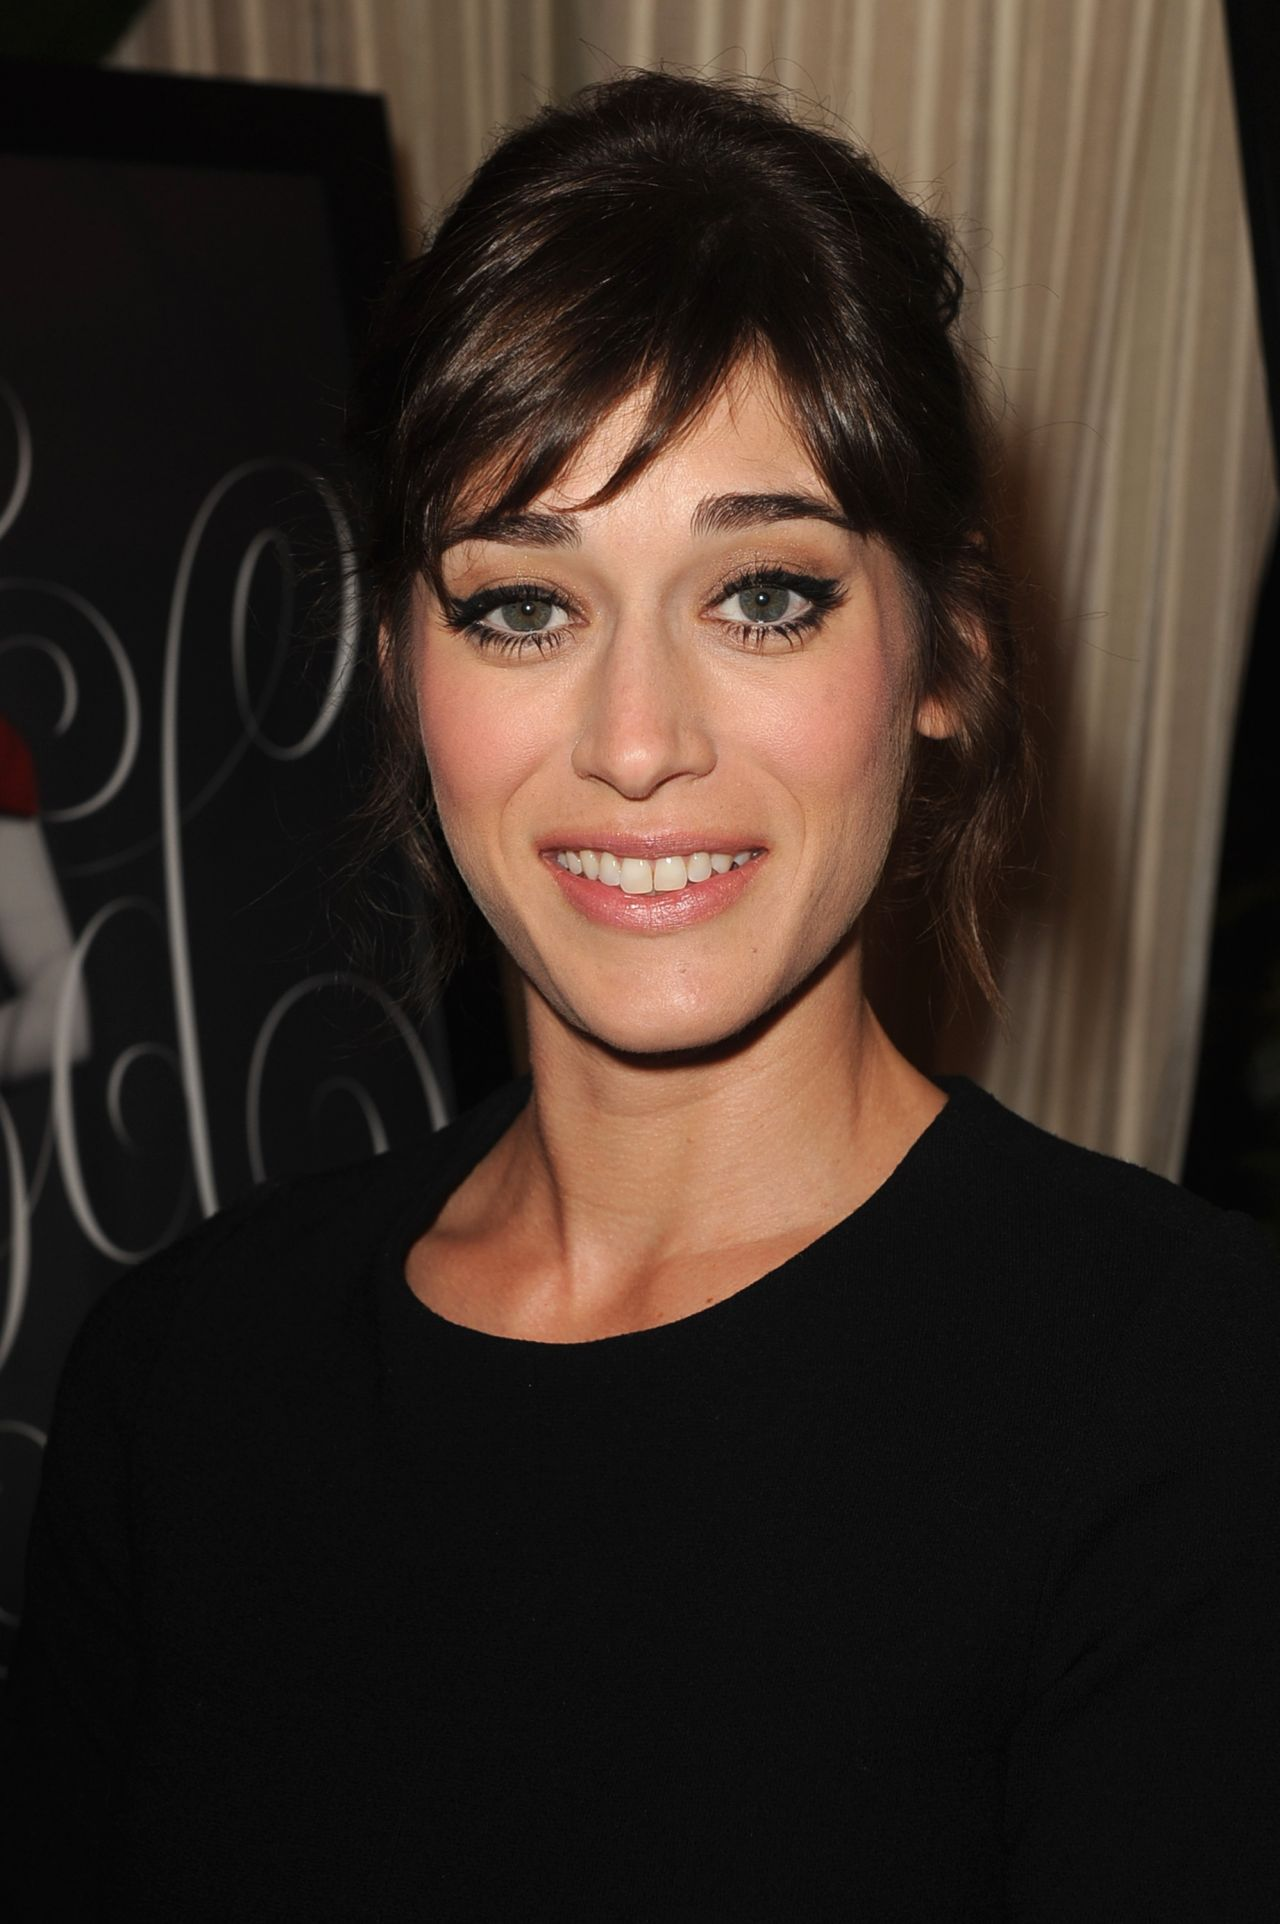 lizzy caplan wallpapers high quality download free